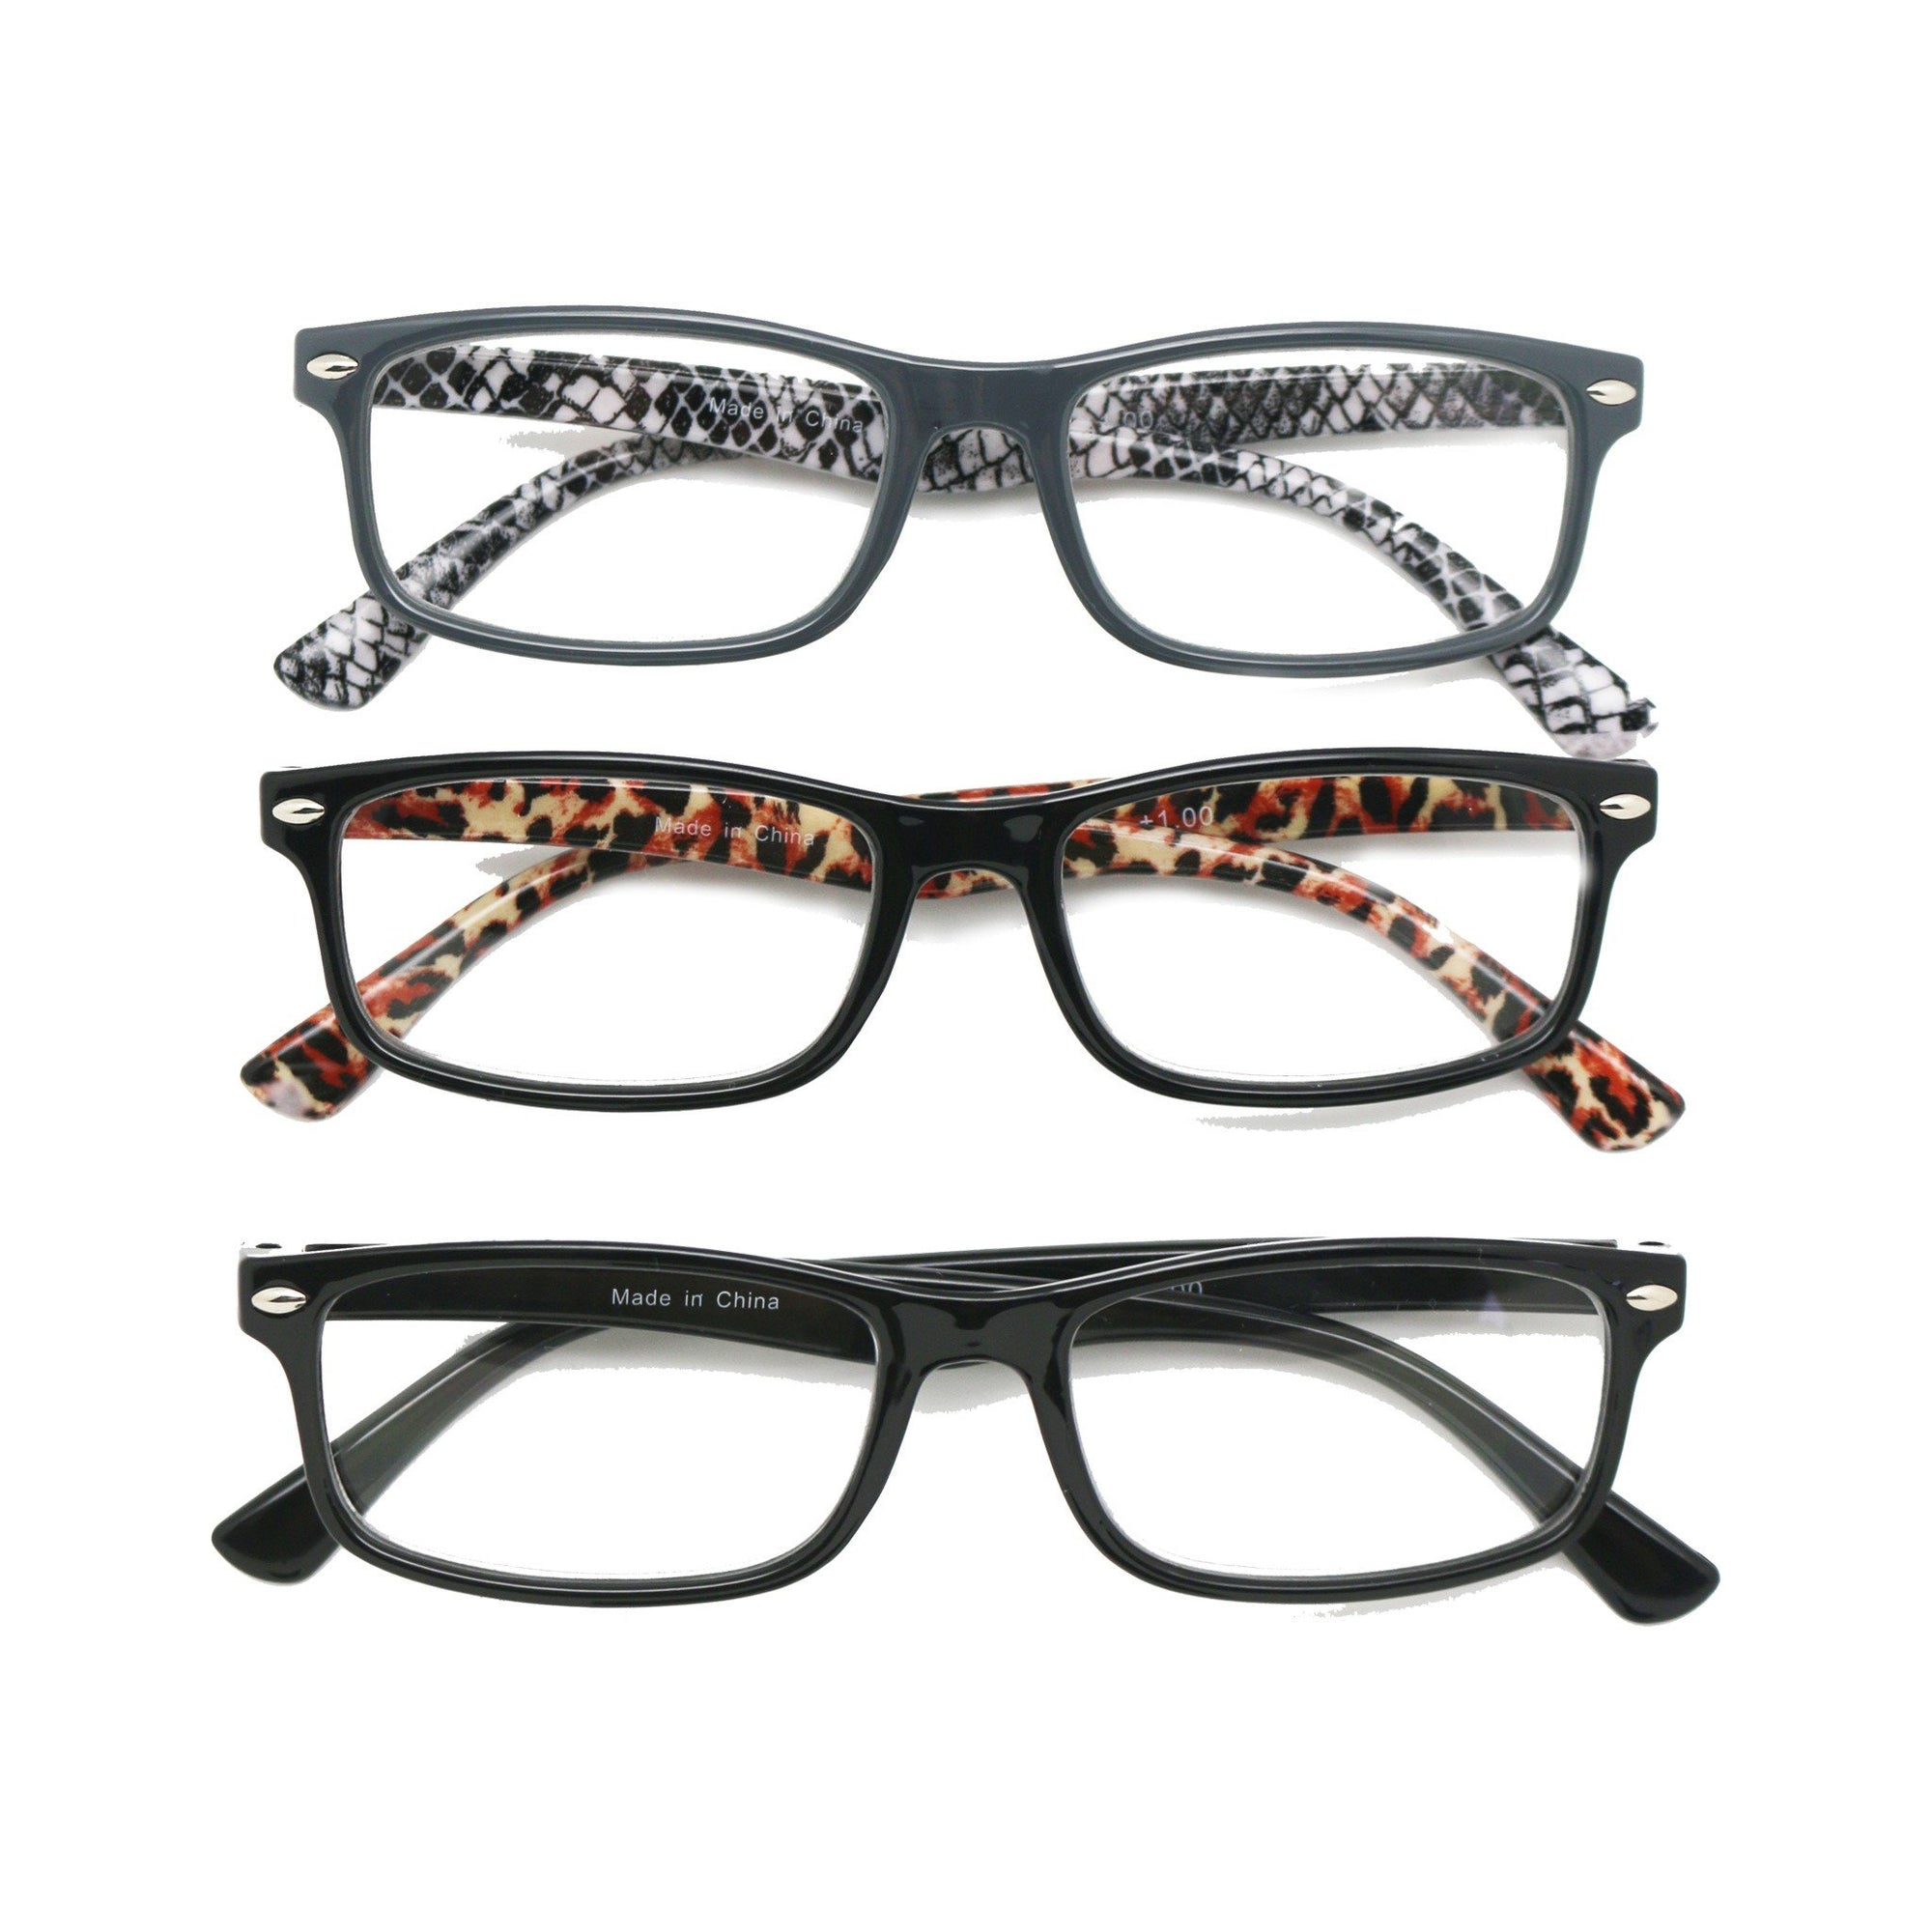 Casa Womens Reading Glasses +1.5 Magnification 3pk